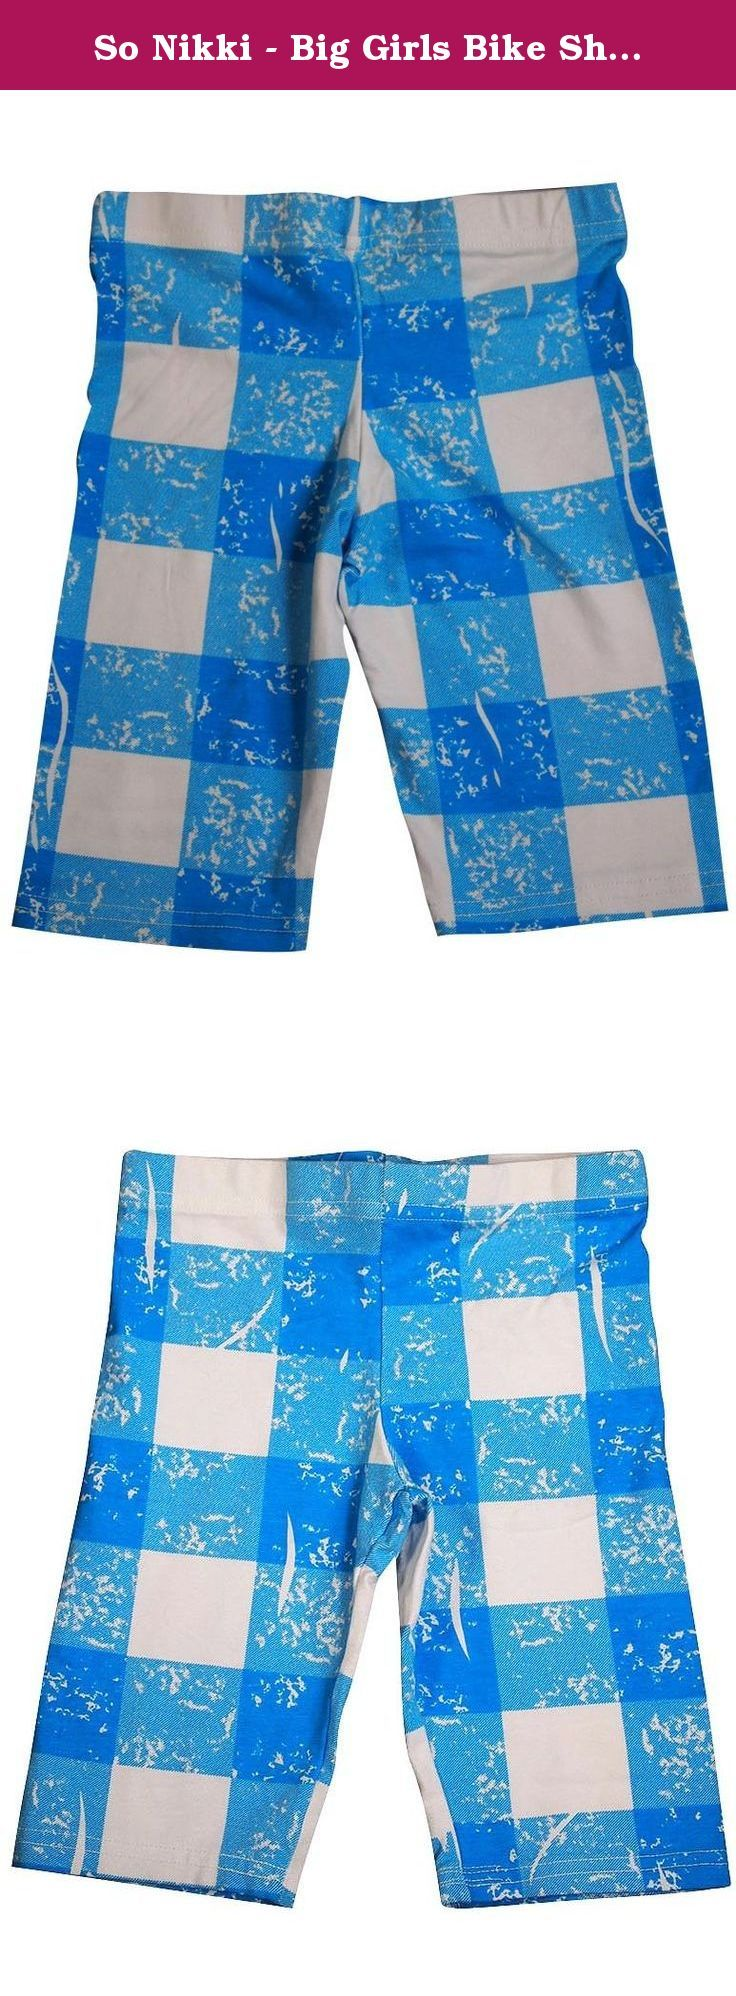 So Nikki - Big Girls Bike Shorts, Turquoise, White 36066-Small. So Nikki - Big Girls Bike Shorts, Turquoise, White, Full Elastic Waistband, Distressed Plaid, Size XS = 5/6 S = 7/8 M = 10/12 L = 14 XL = 16, 92% Cotton 8% Spandex, Made in USA, #36066 36-066.